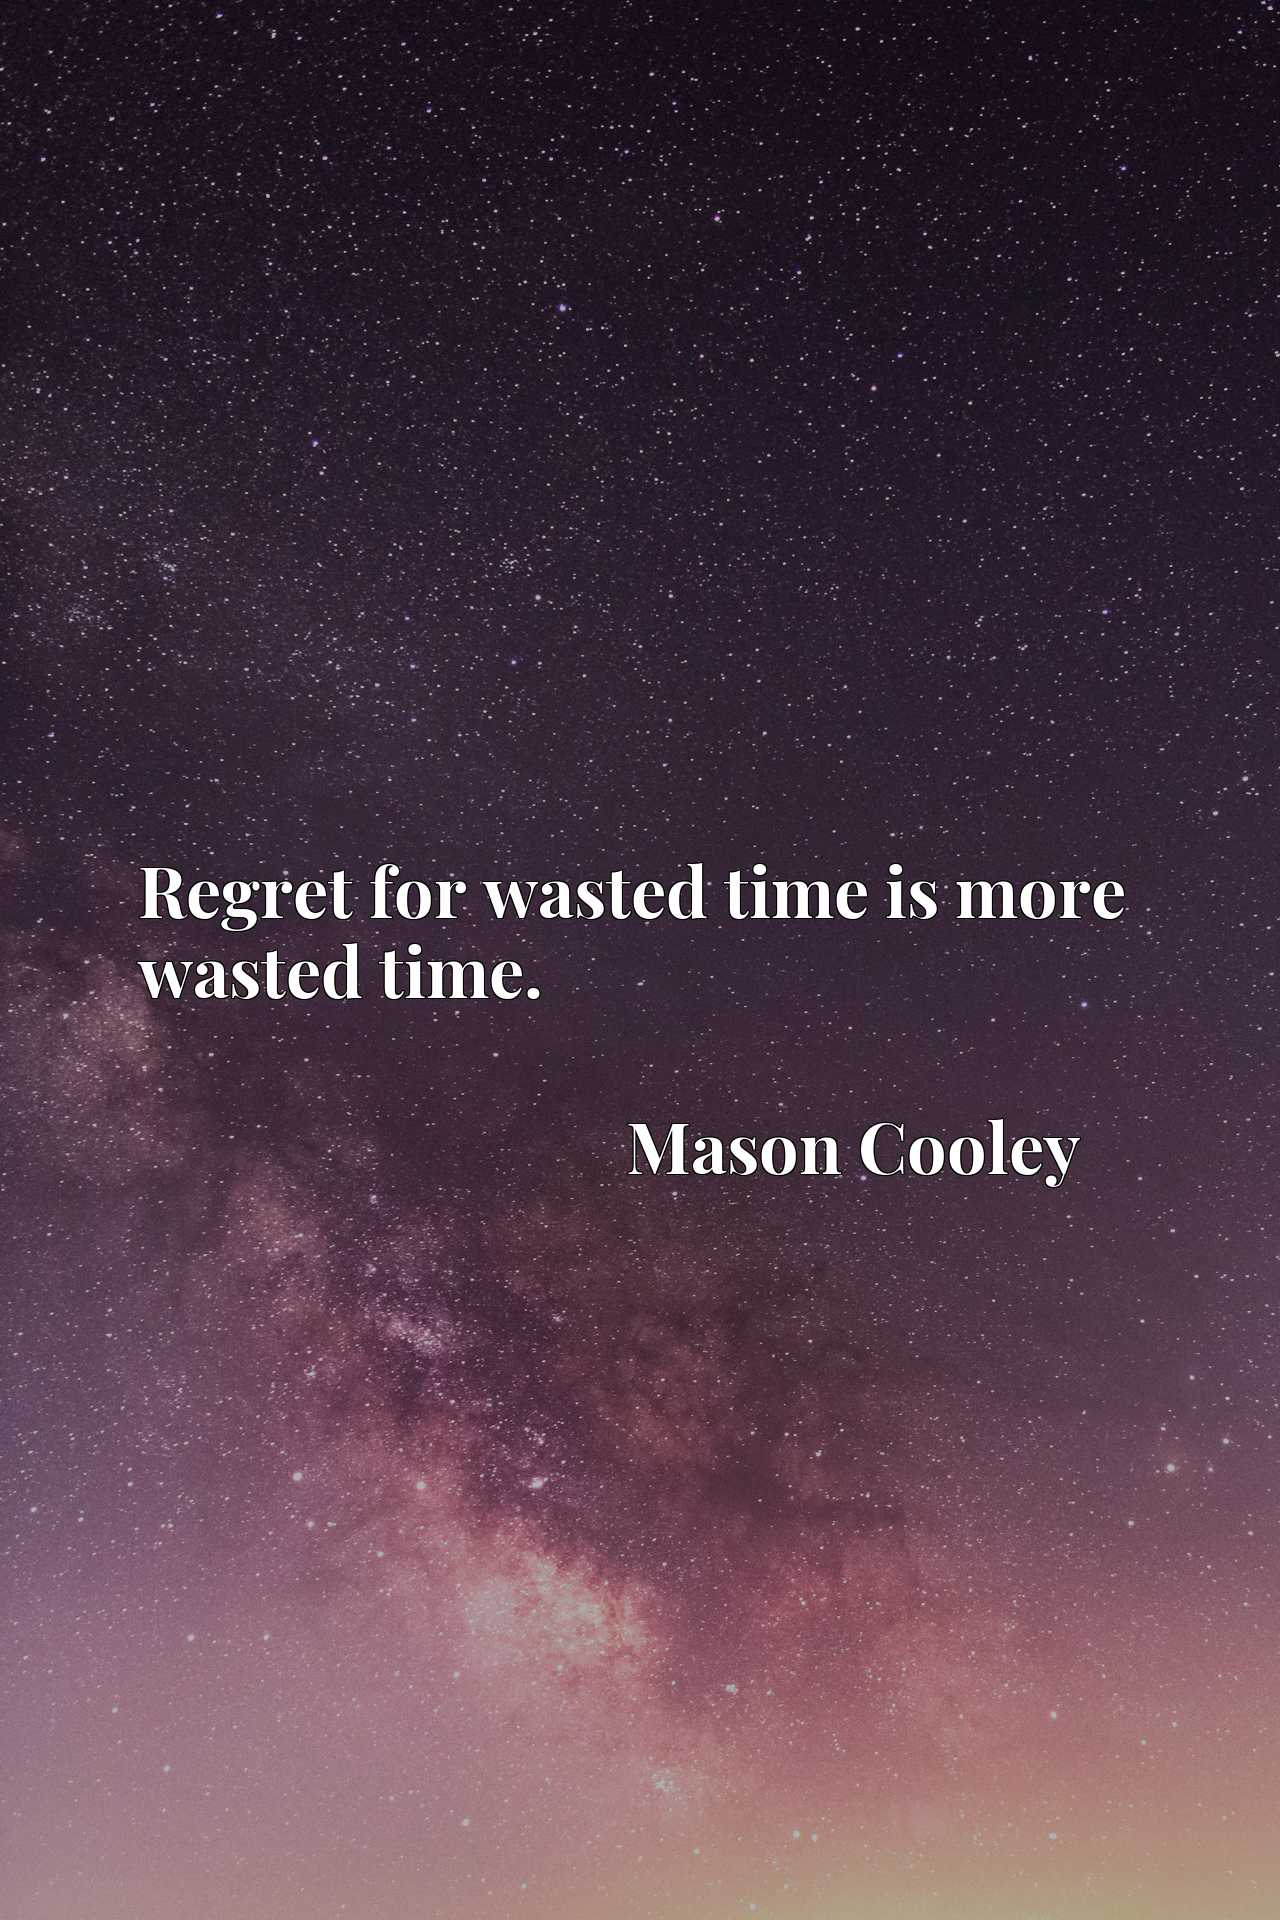 Regret for wasted time is more wasted time.